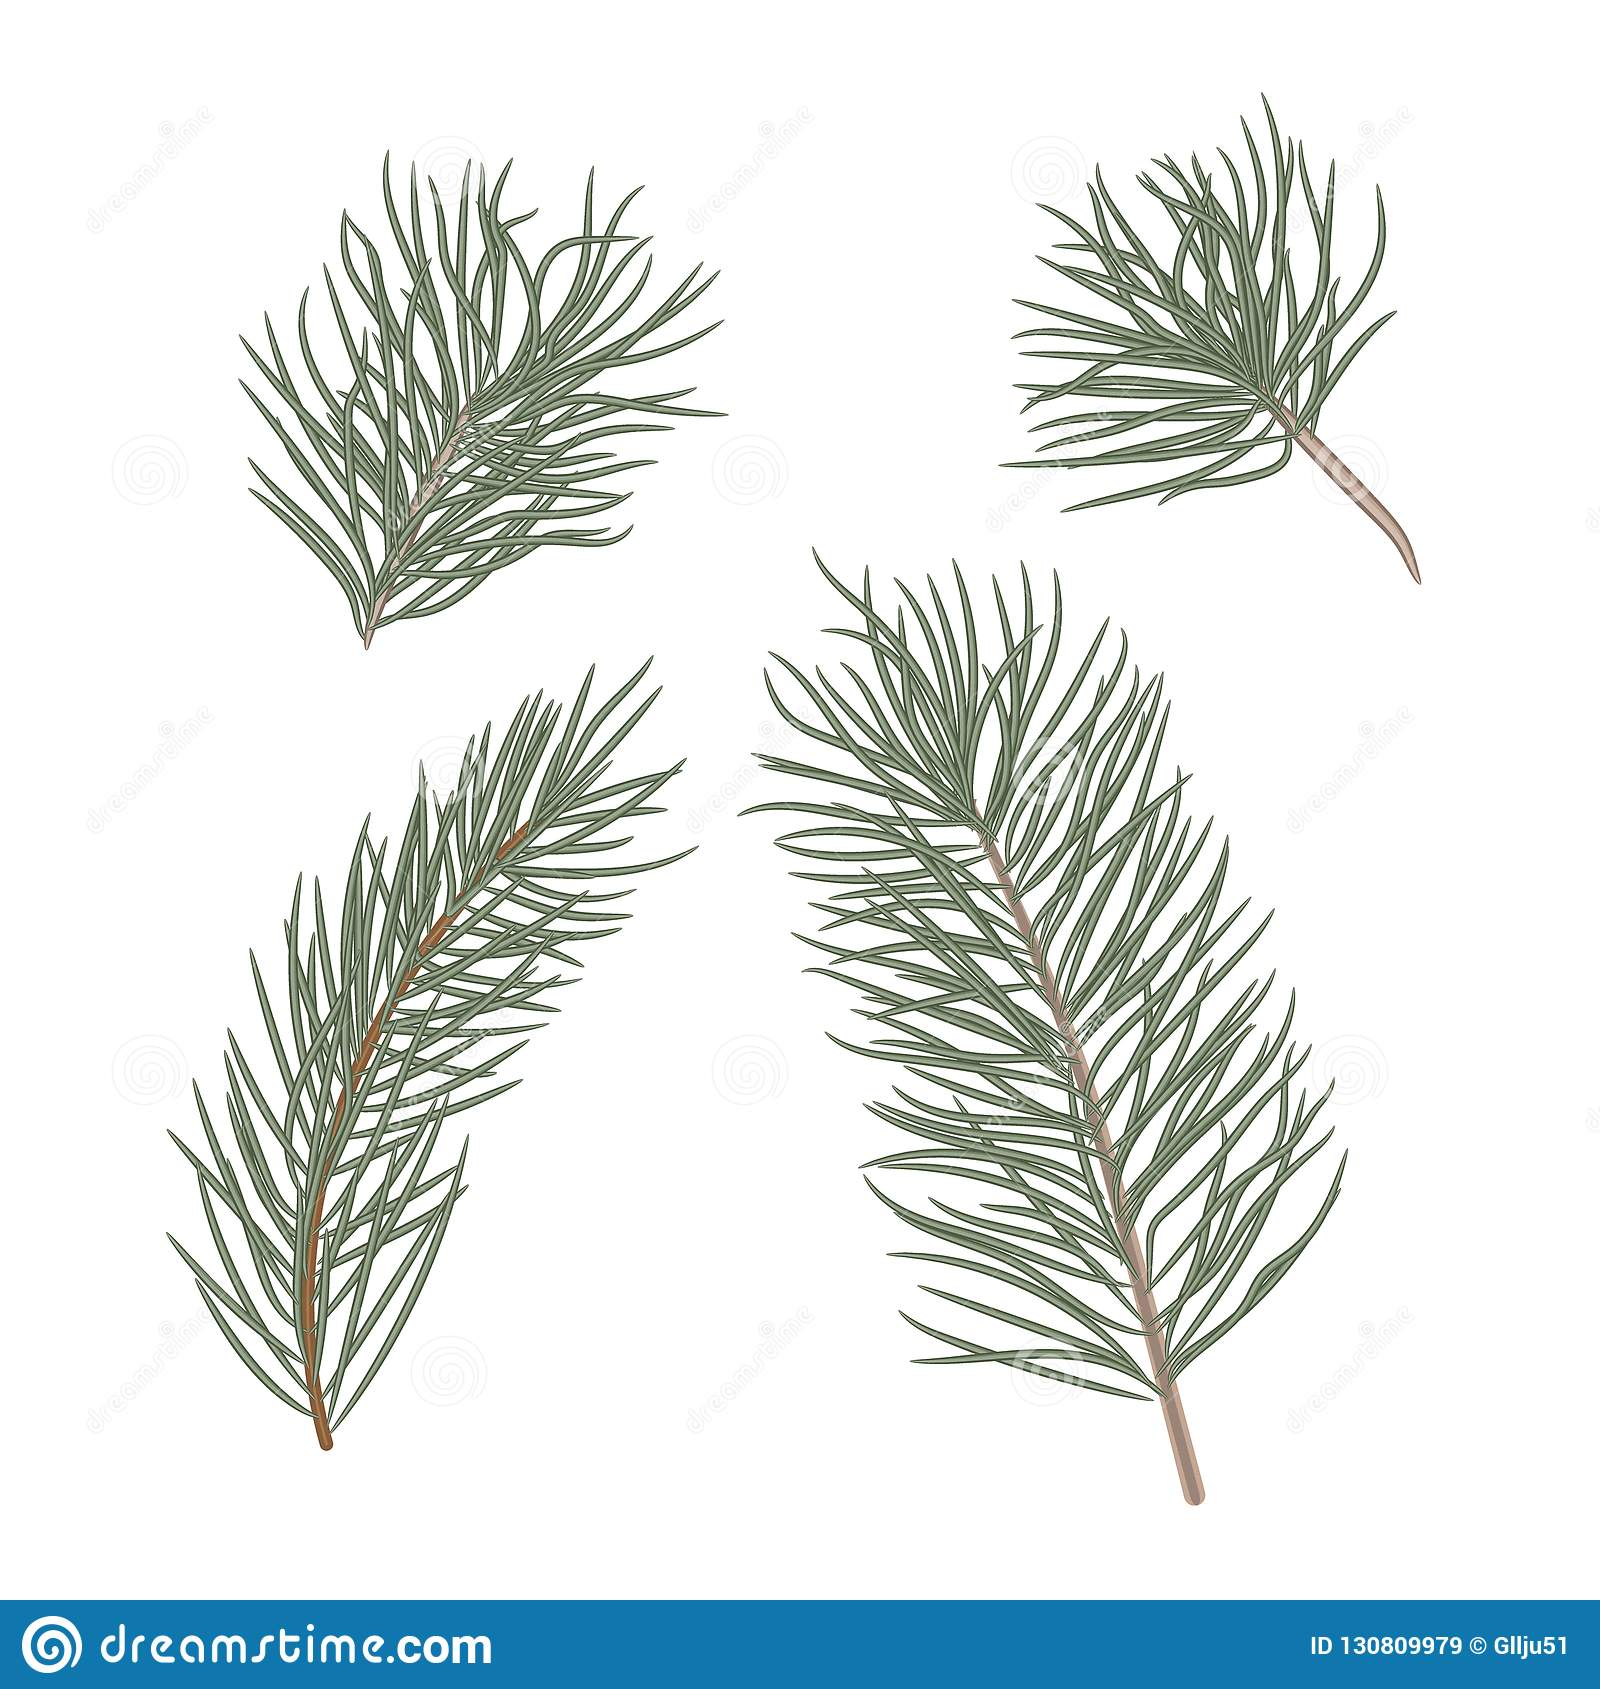 Christmas Tree Branches Set For Christmas Decor Branches Close Up Collection Of Pine Branches Vector Set Of Christmas Graphic Stock Vector Illustration Of Cedar Evergreen 130809979